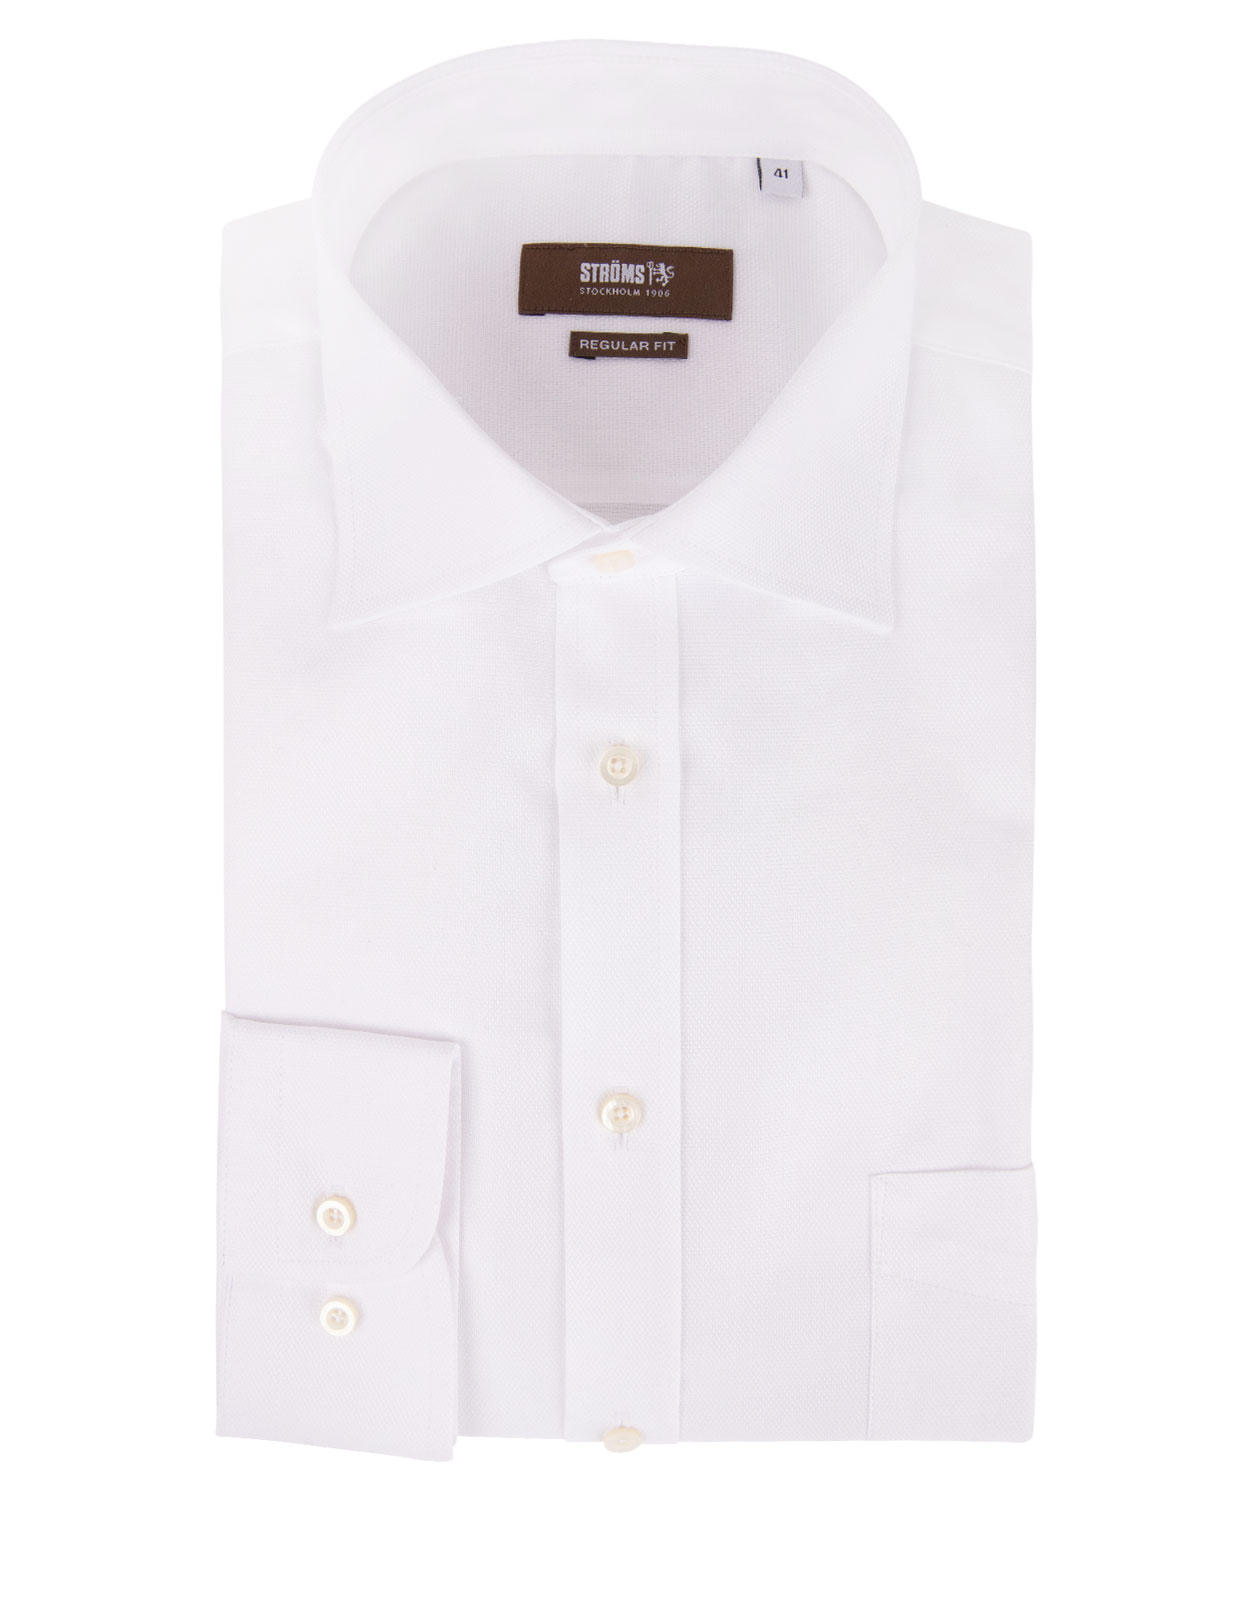 Regular Fit Royal Oxford Shirt White